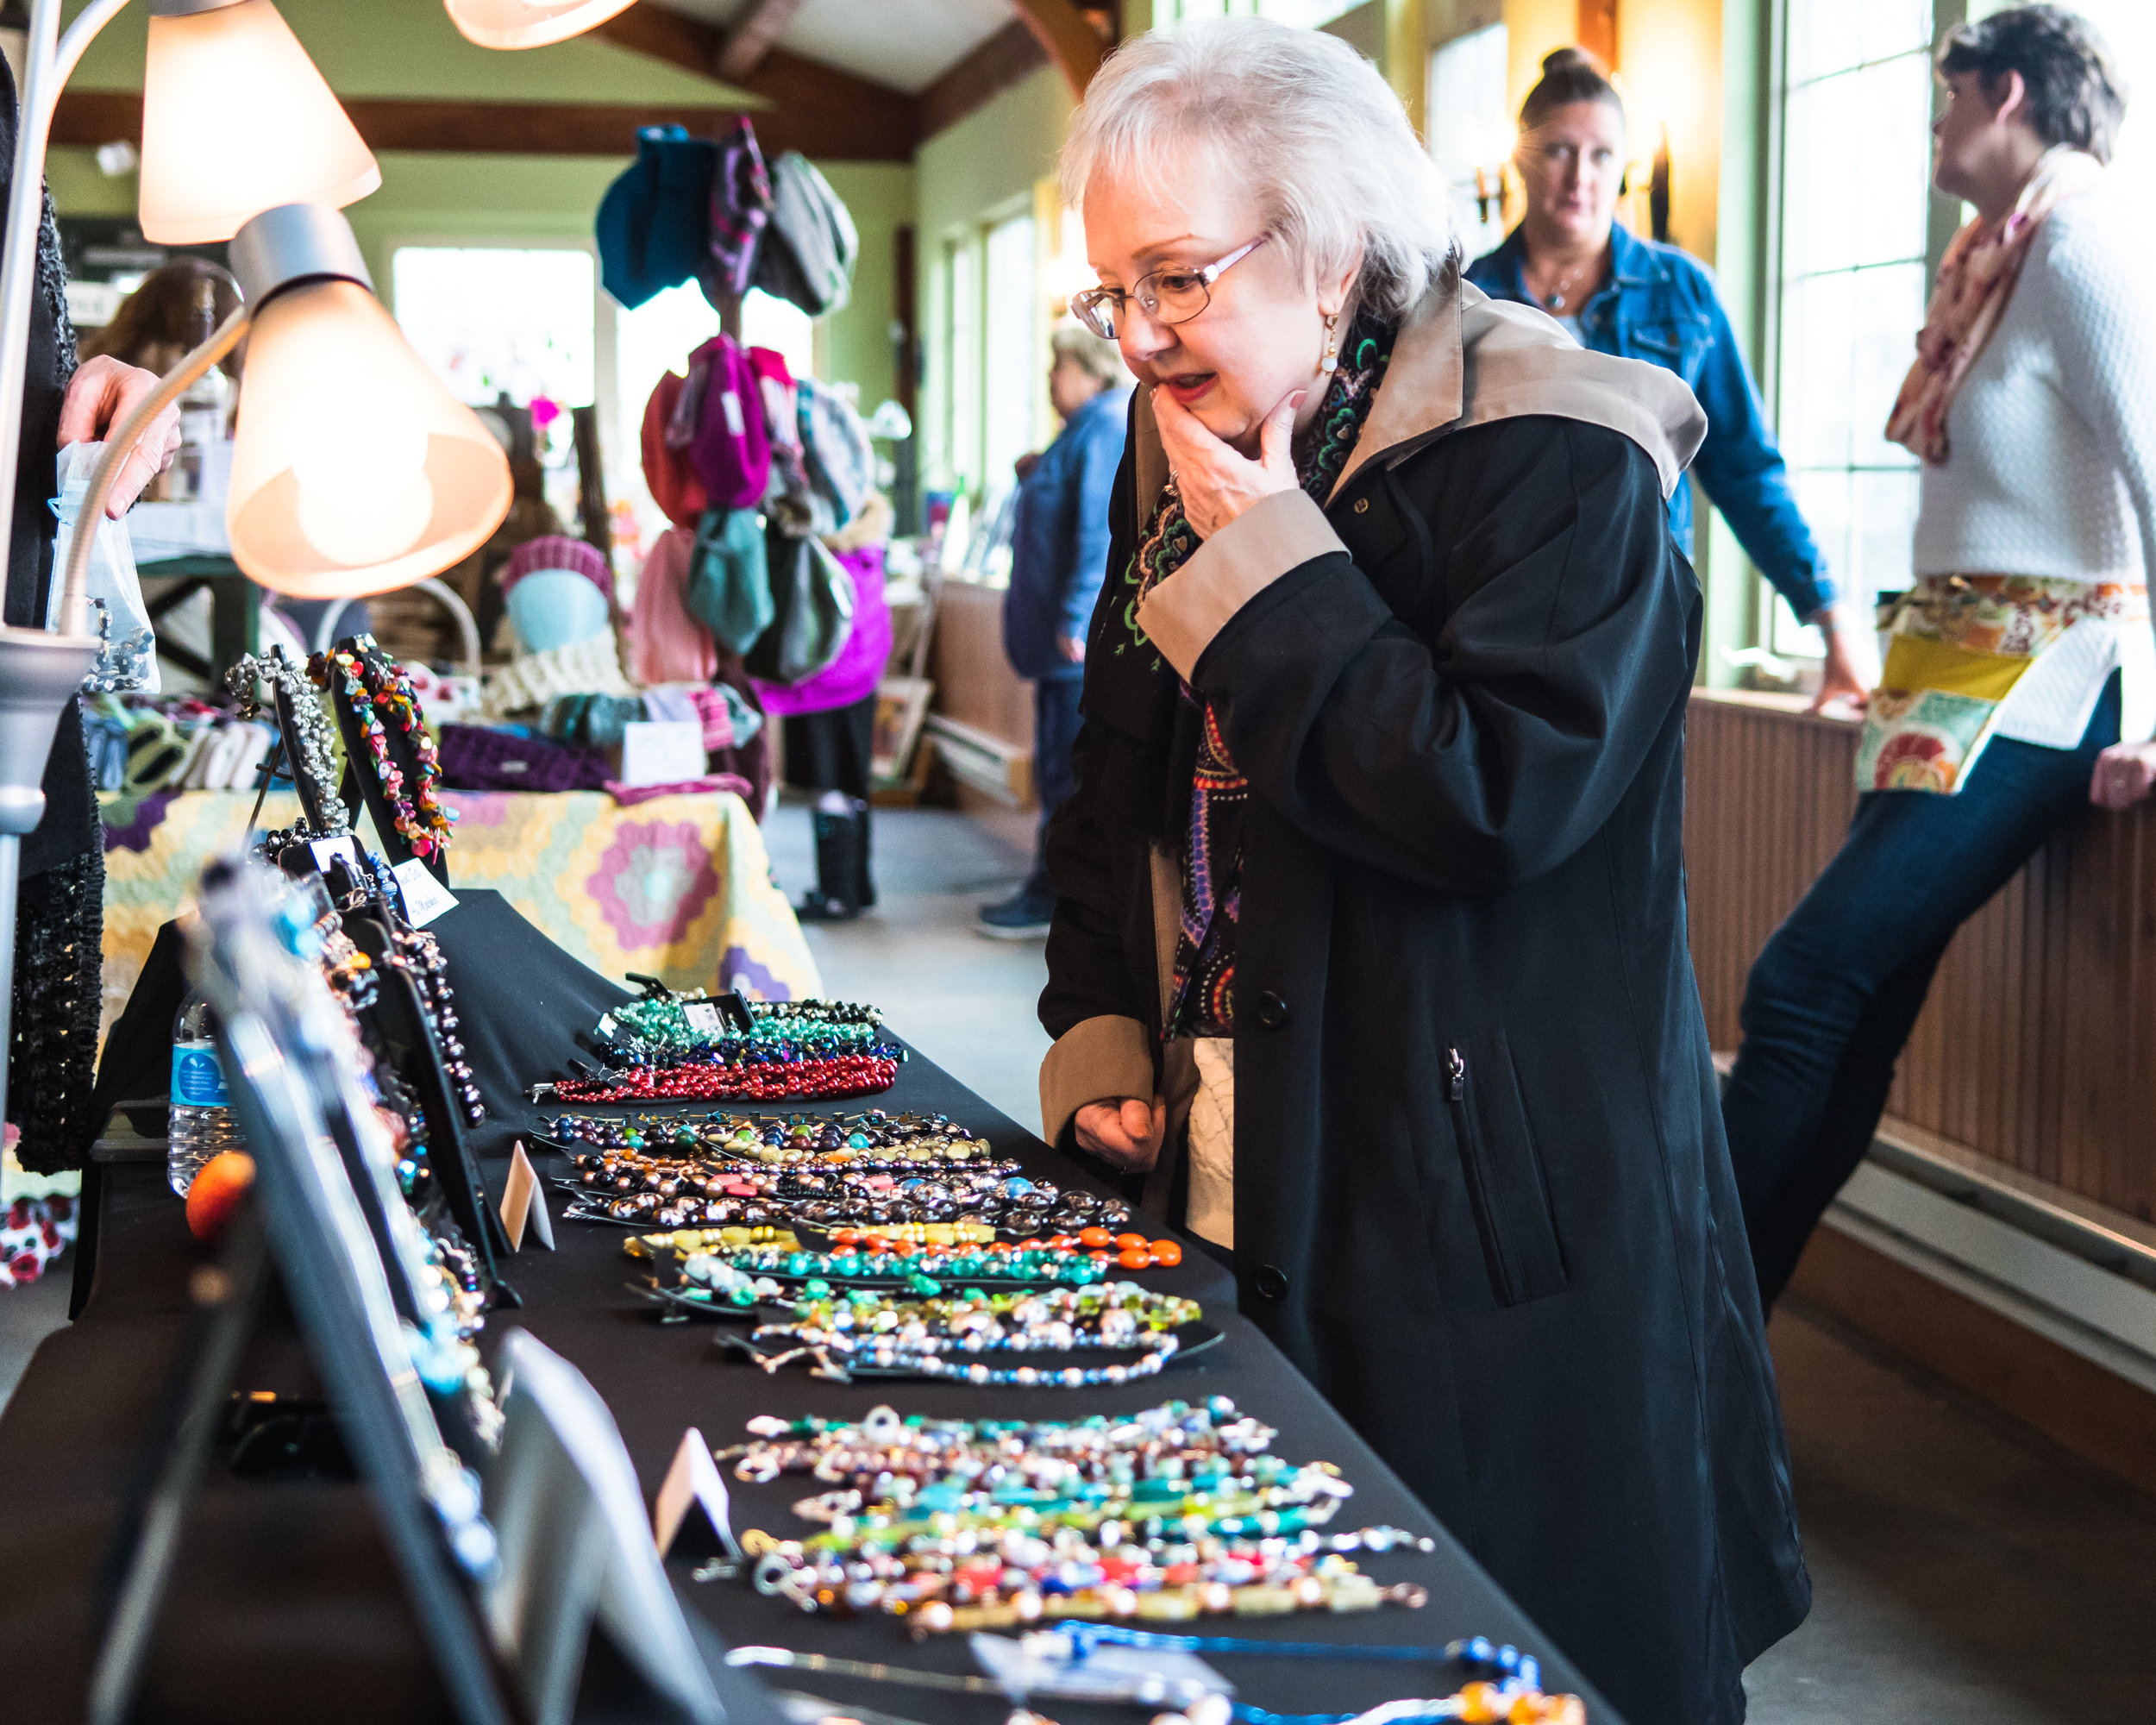 Decisions, Decisions--Karen Buswell looks over the jewelry selection of Linda Glass, of Designs by Glass, during the Spring Arts & Craft Fair at Borzynski's Farm and Floral Market, 11600 Washington Ave., Mount Pleasant, on Sunday.